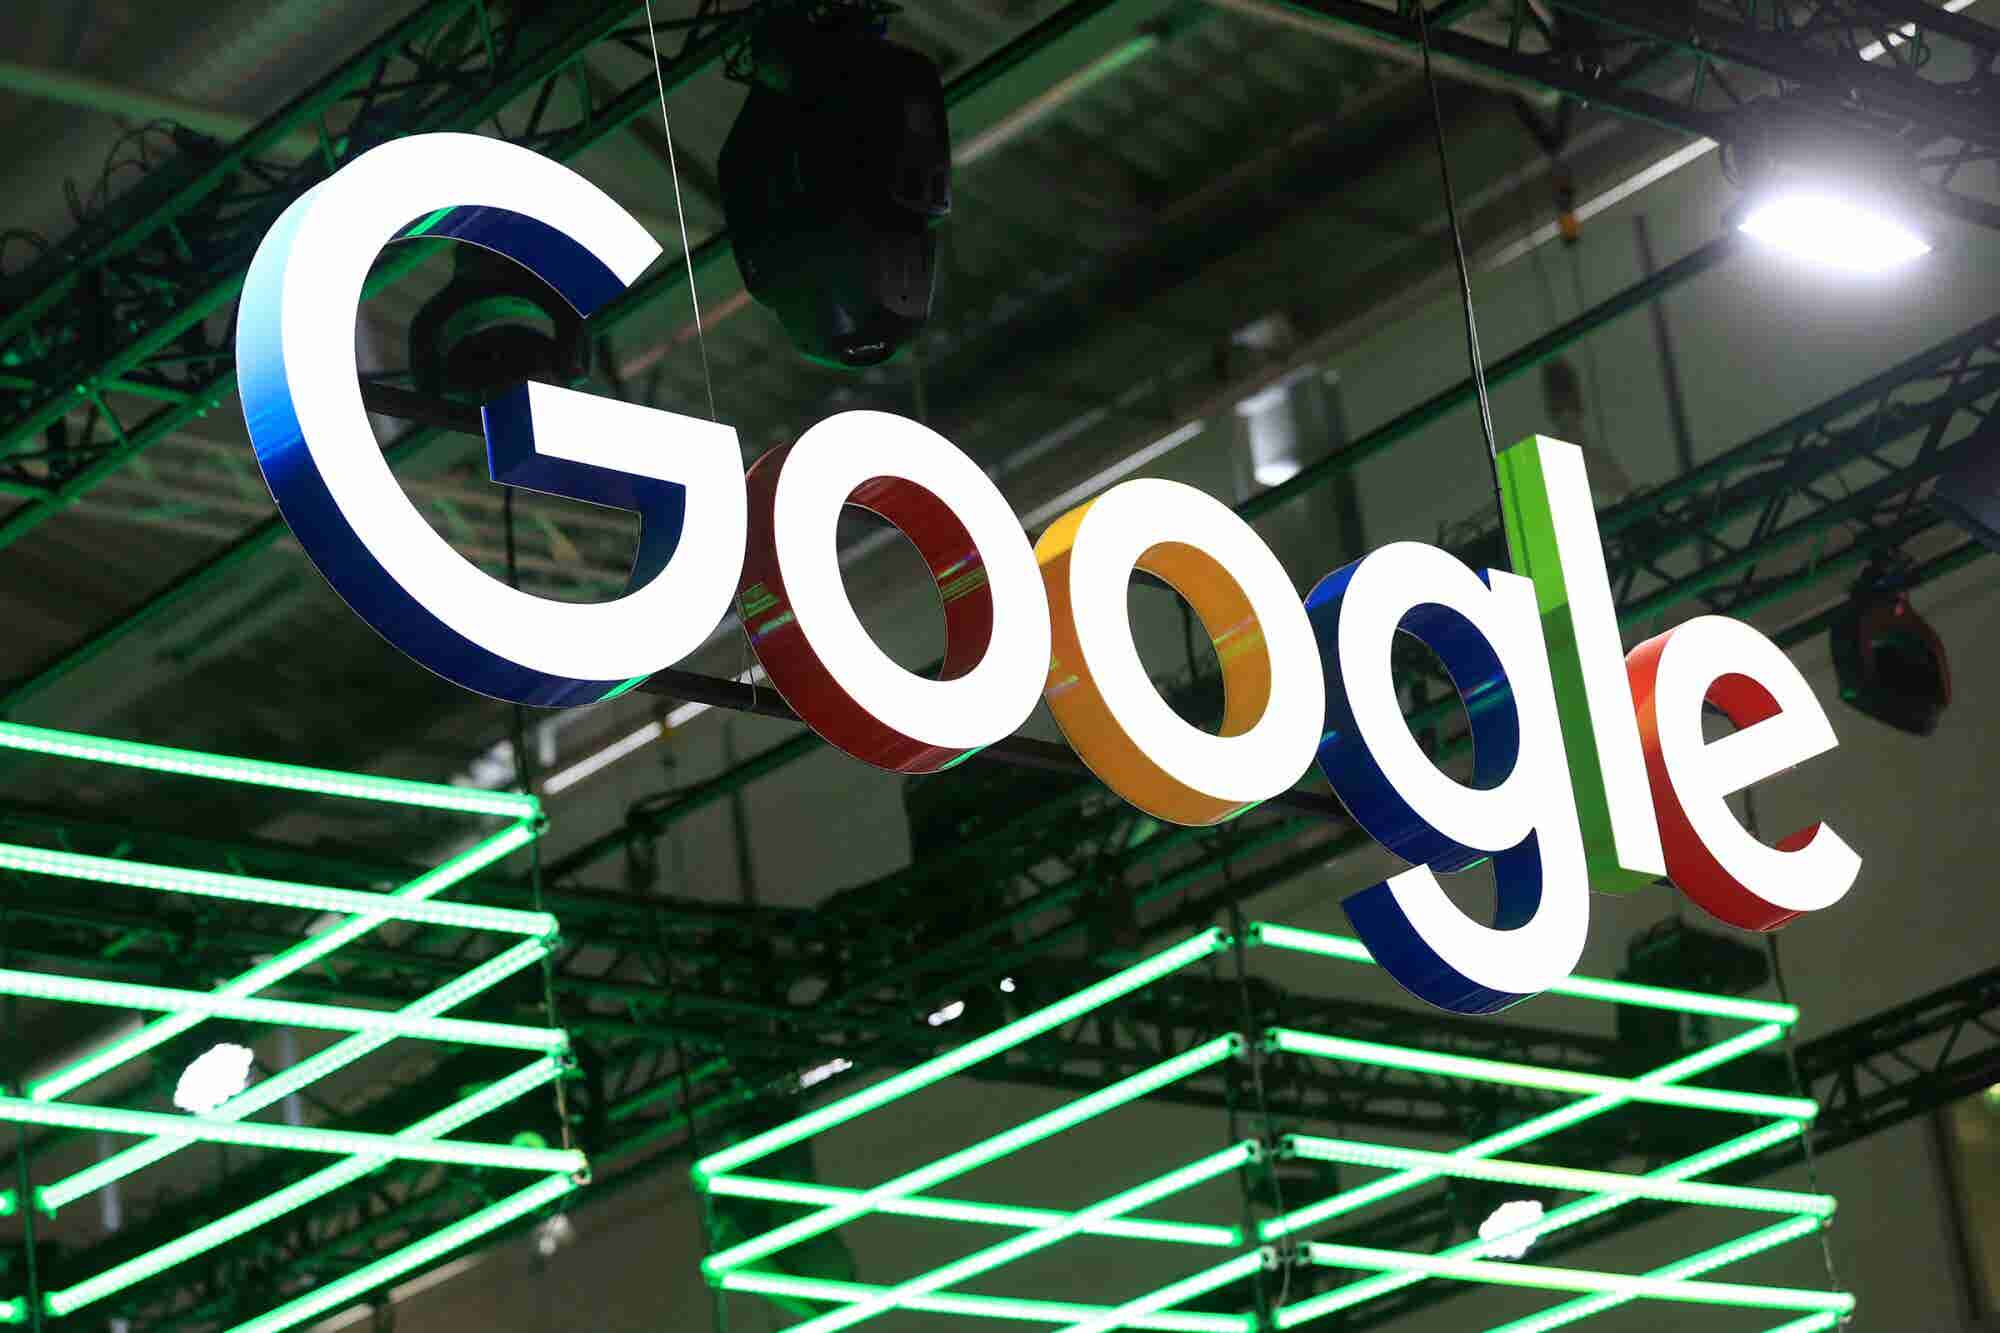 Tech Industry Leads the Market Higher on Great Day for Google, Facebook and Amazon Stocks